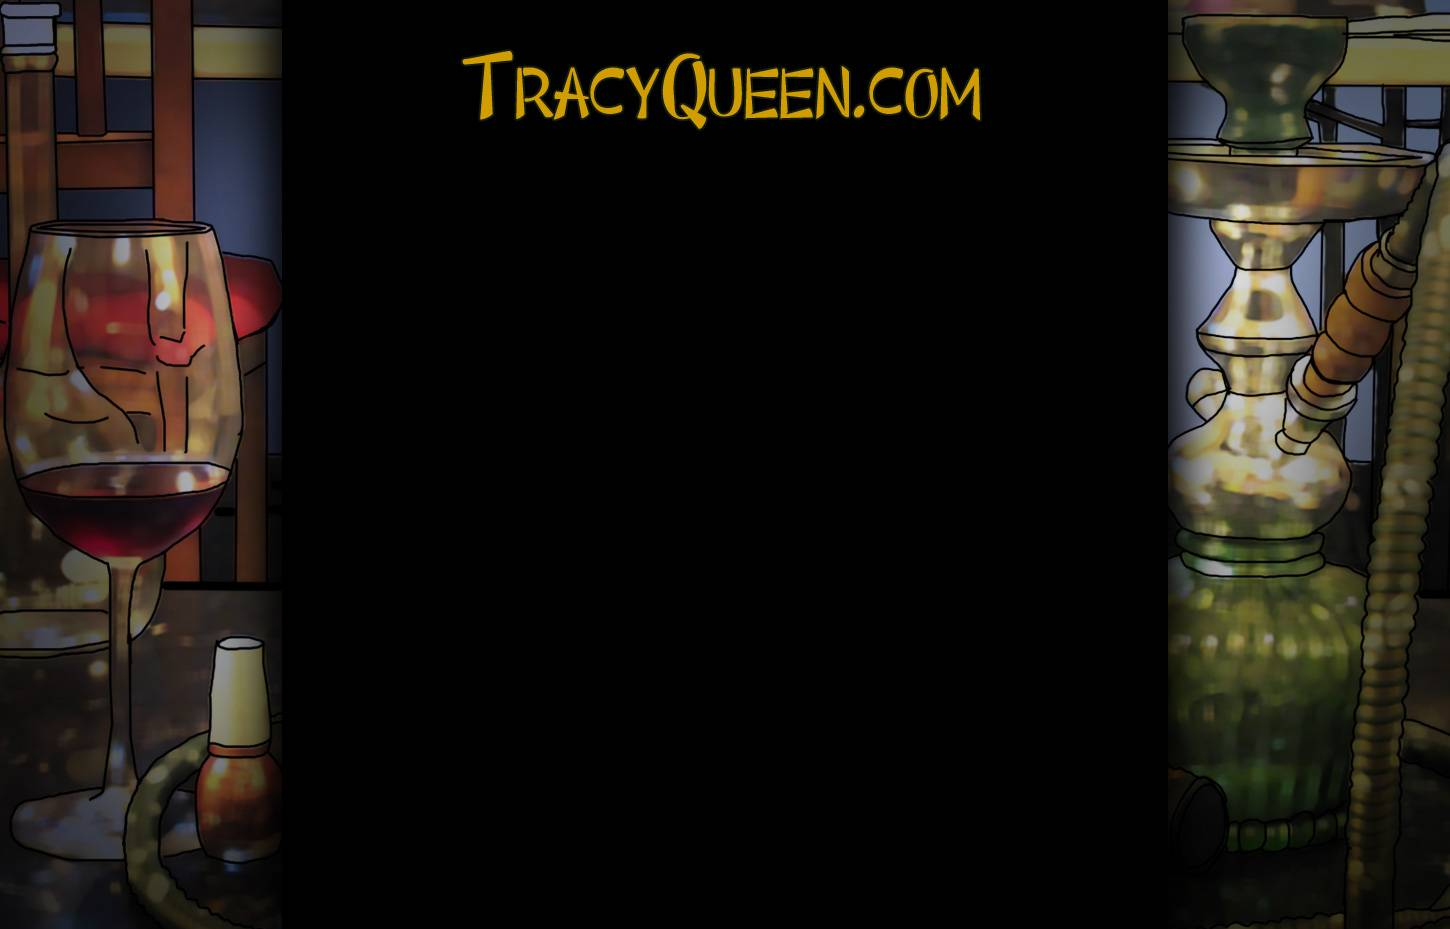 Tracy Queen – Website background image